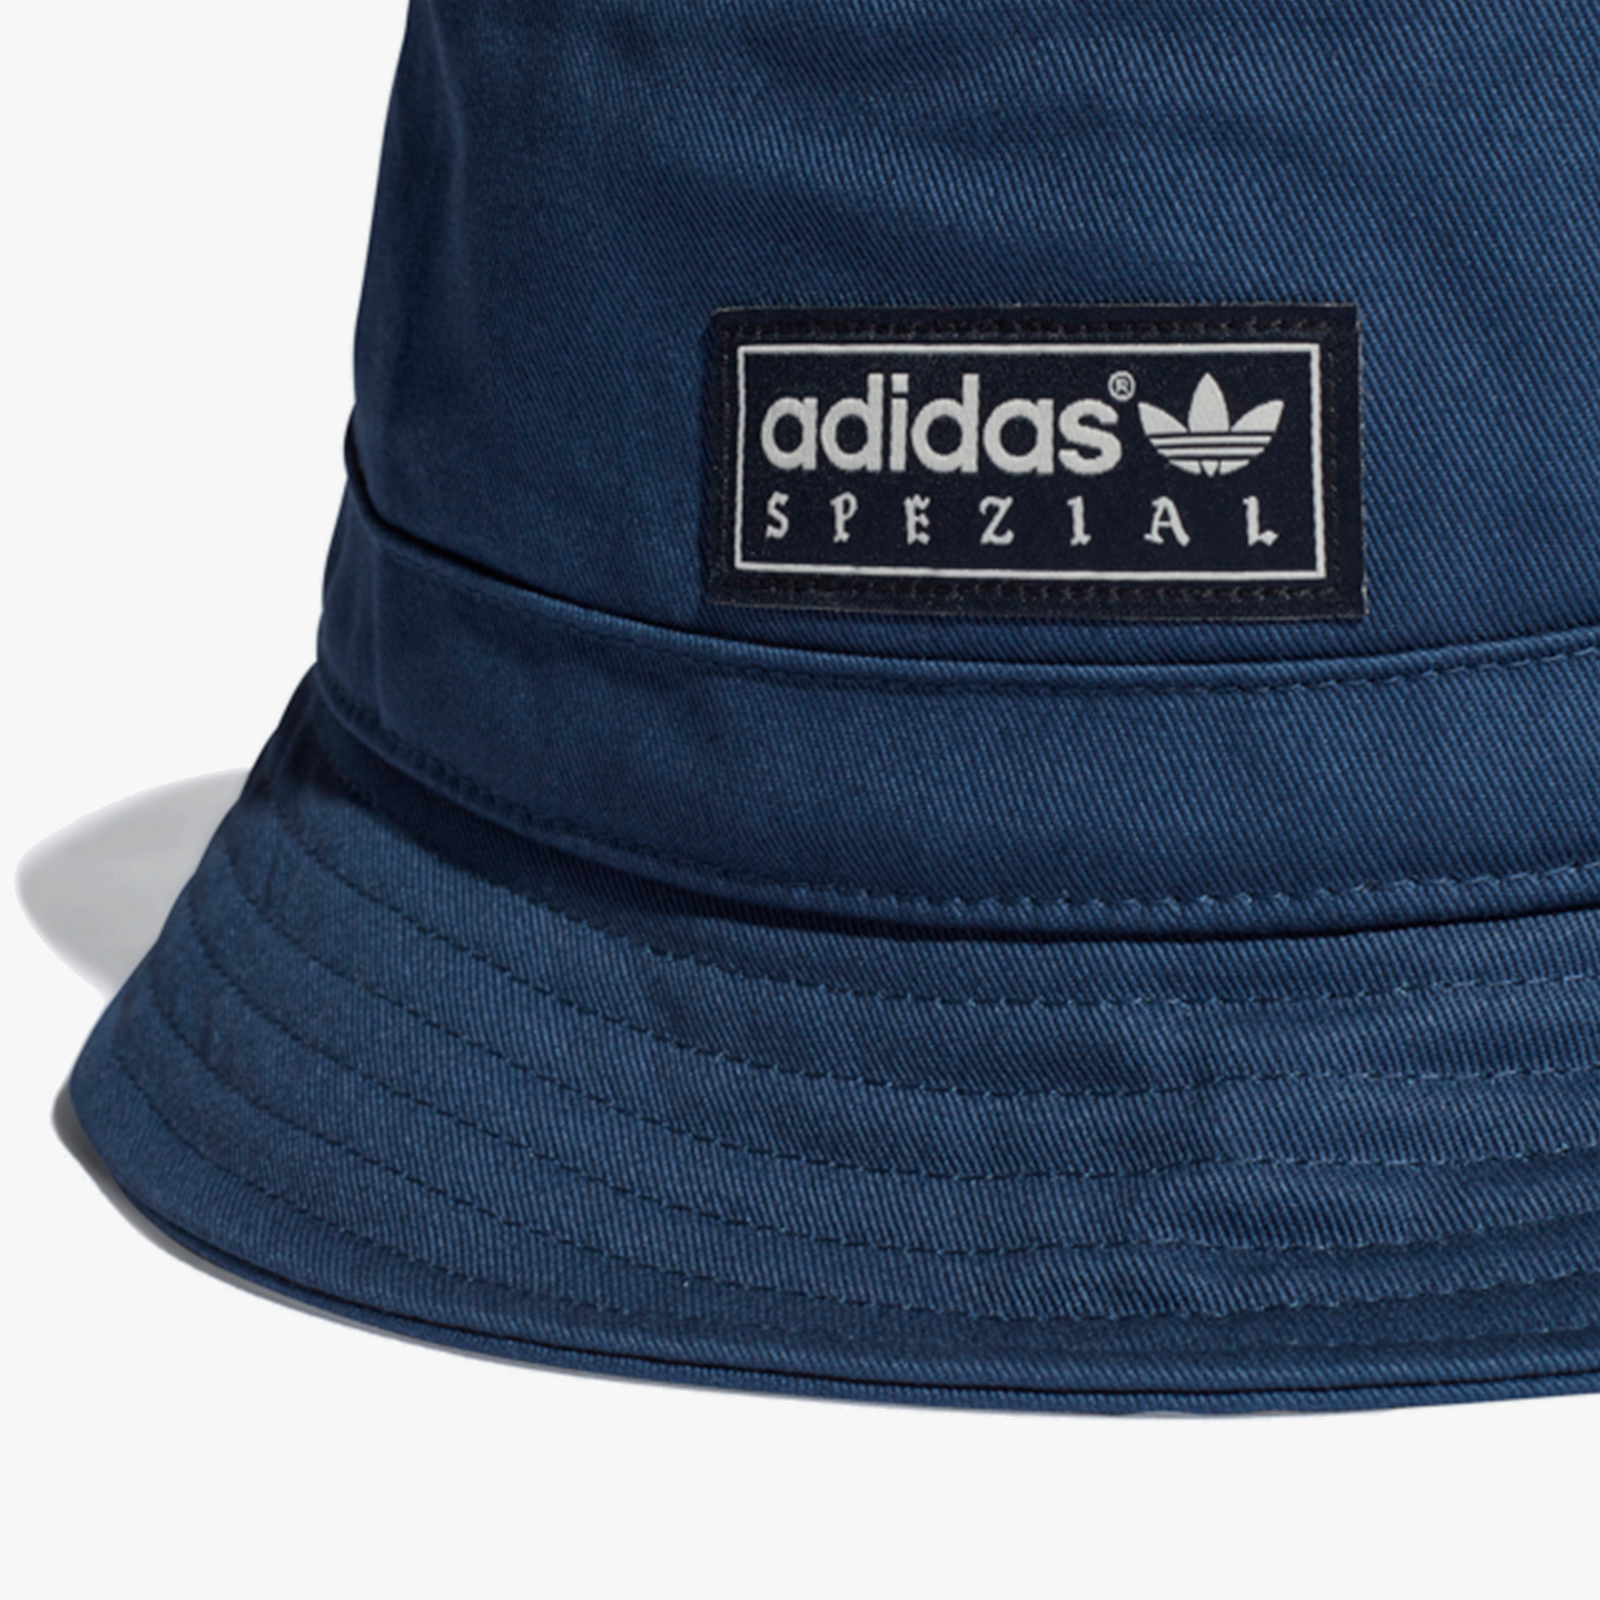 adidas Bucket Hat x Union - Dq0115 - Sneakersnstuff  ee5e934f2b3